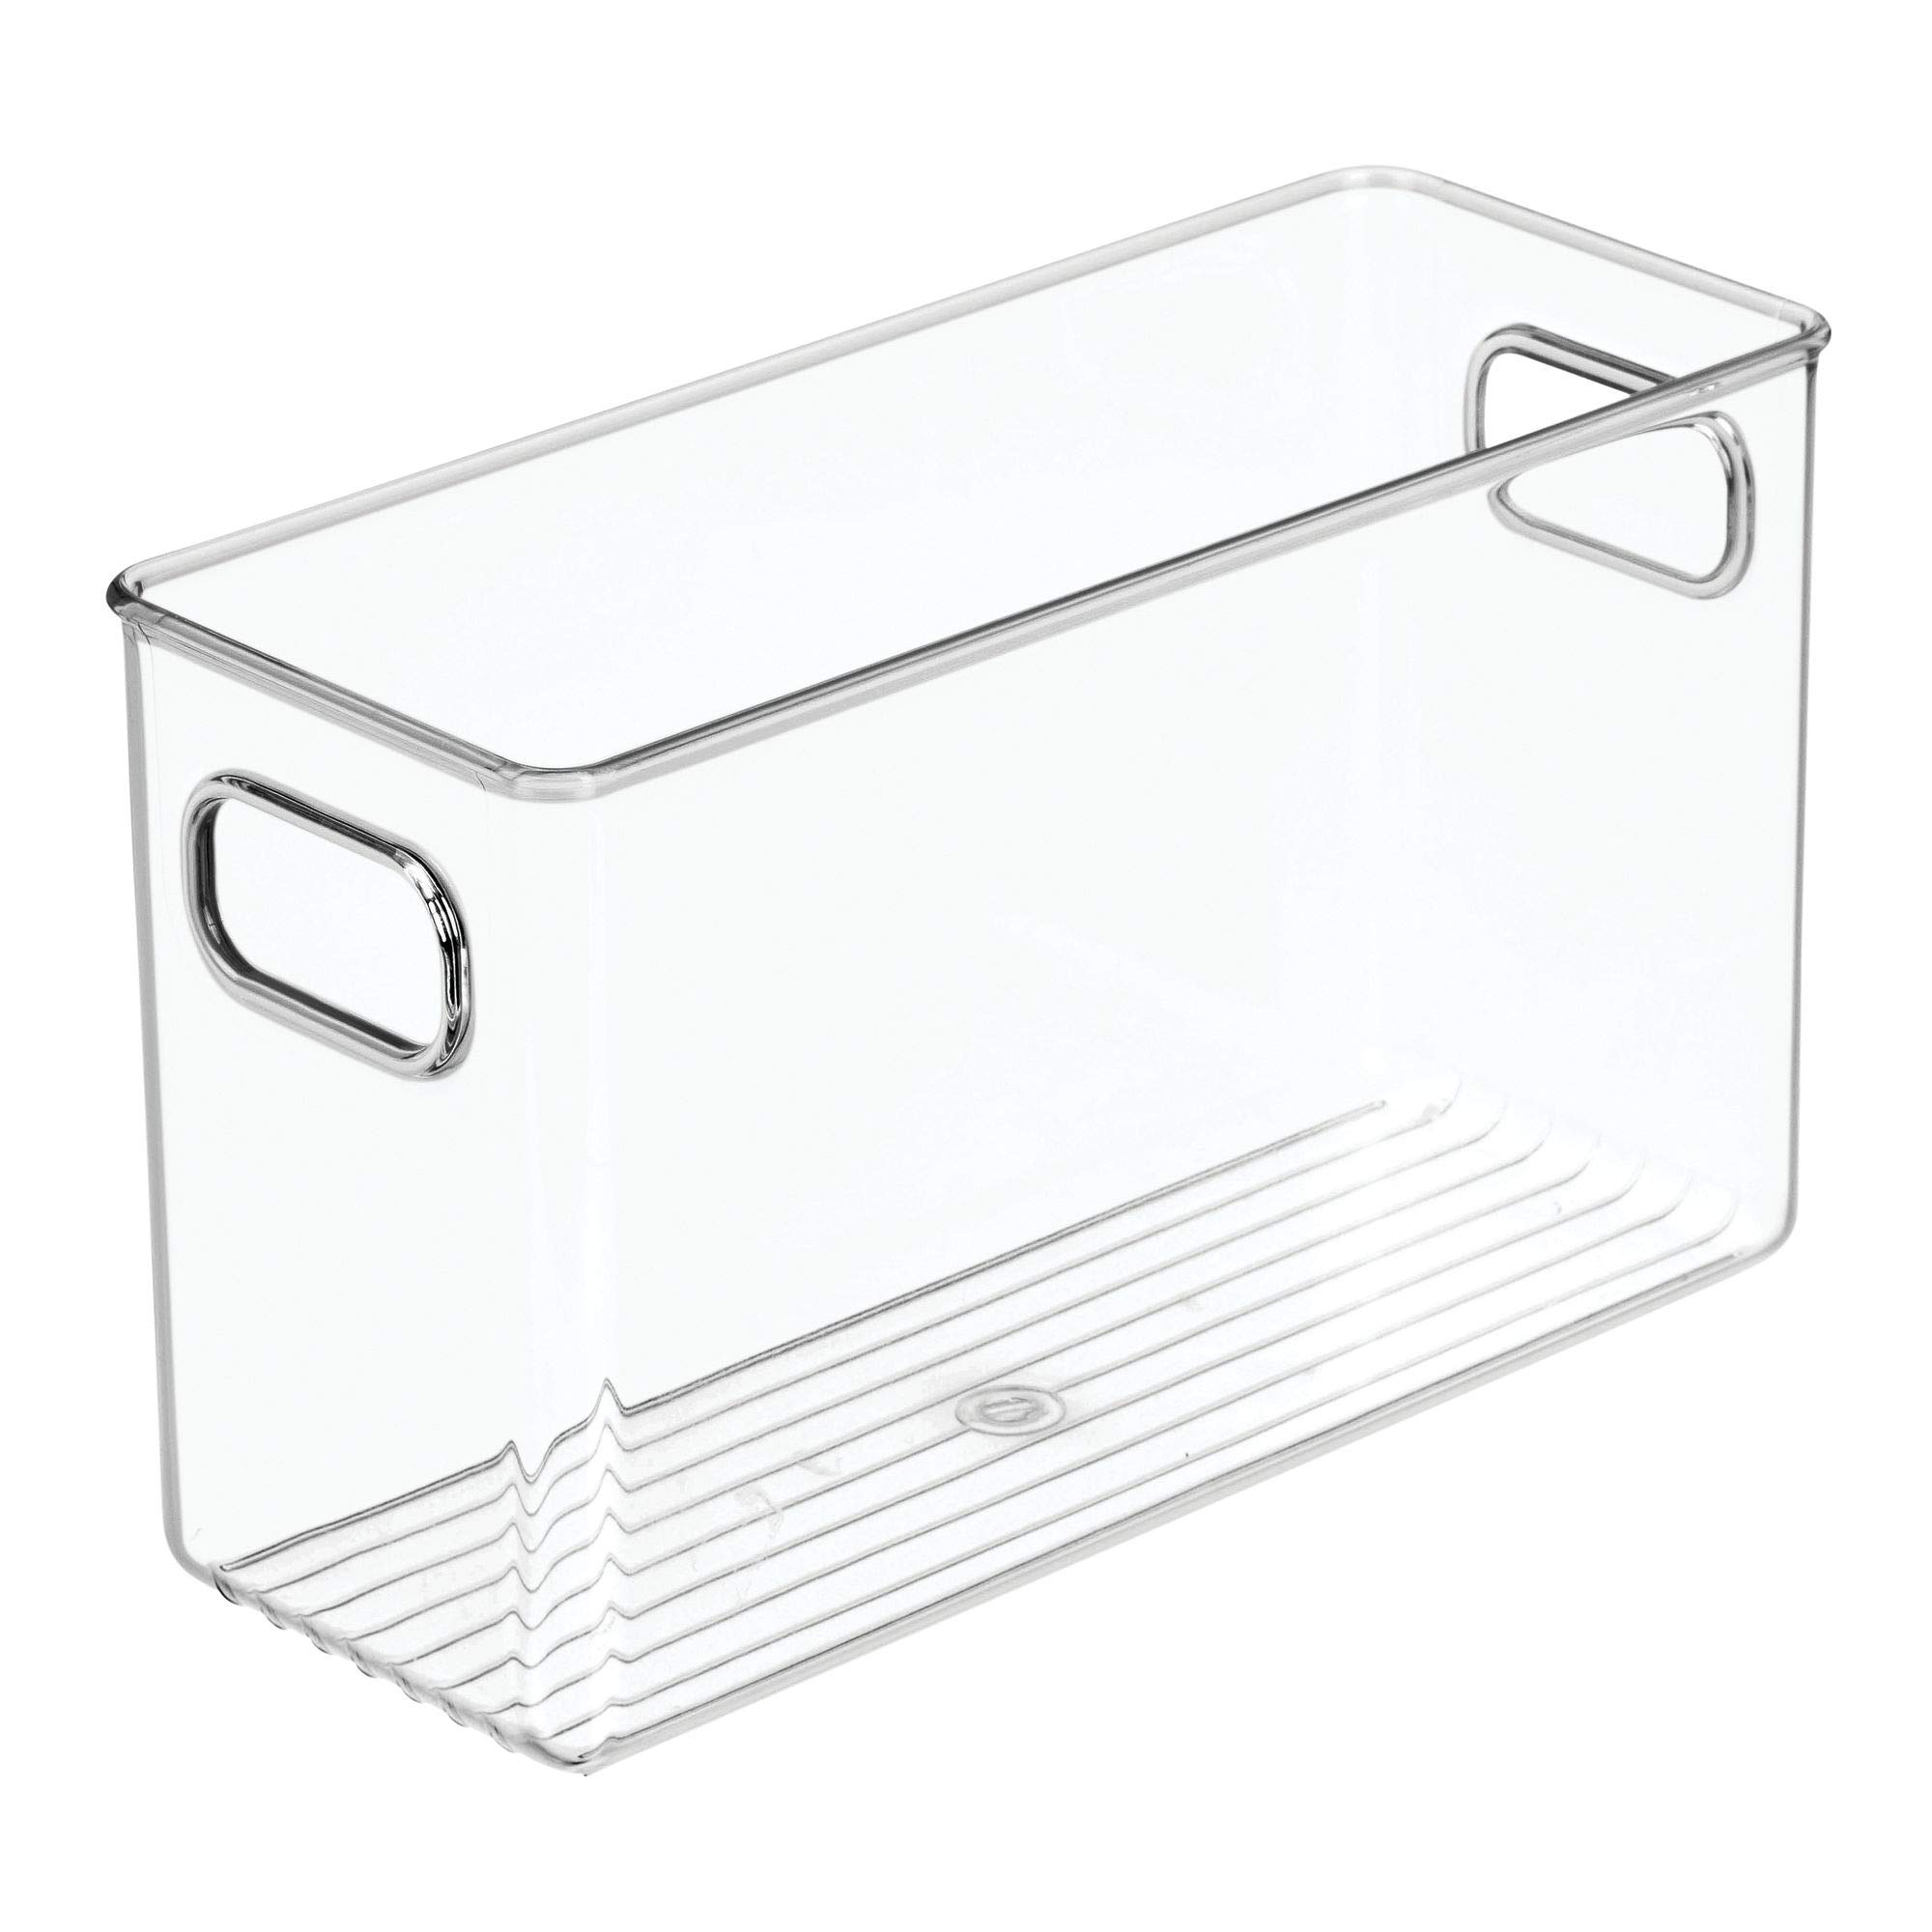 mDesign Office Supplies Desk Organizer Bin for Pens, Pencils, Markers, Highlighters, Tape - Pack of 4, 10'' x 4'' x 6'', Clear by mDesign (Image #7)